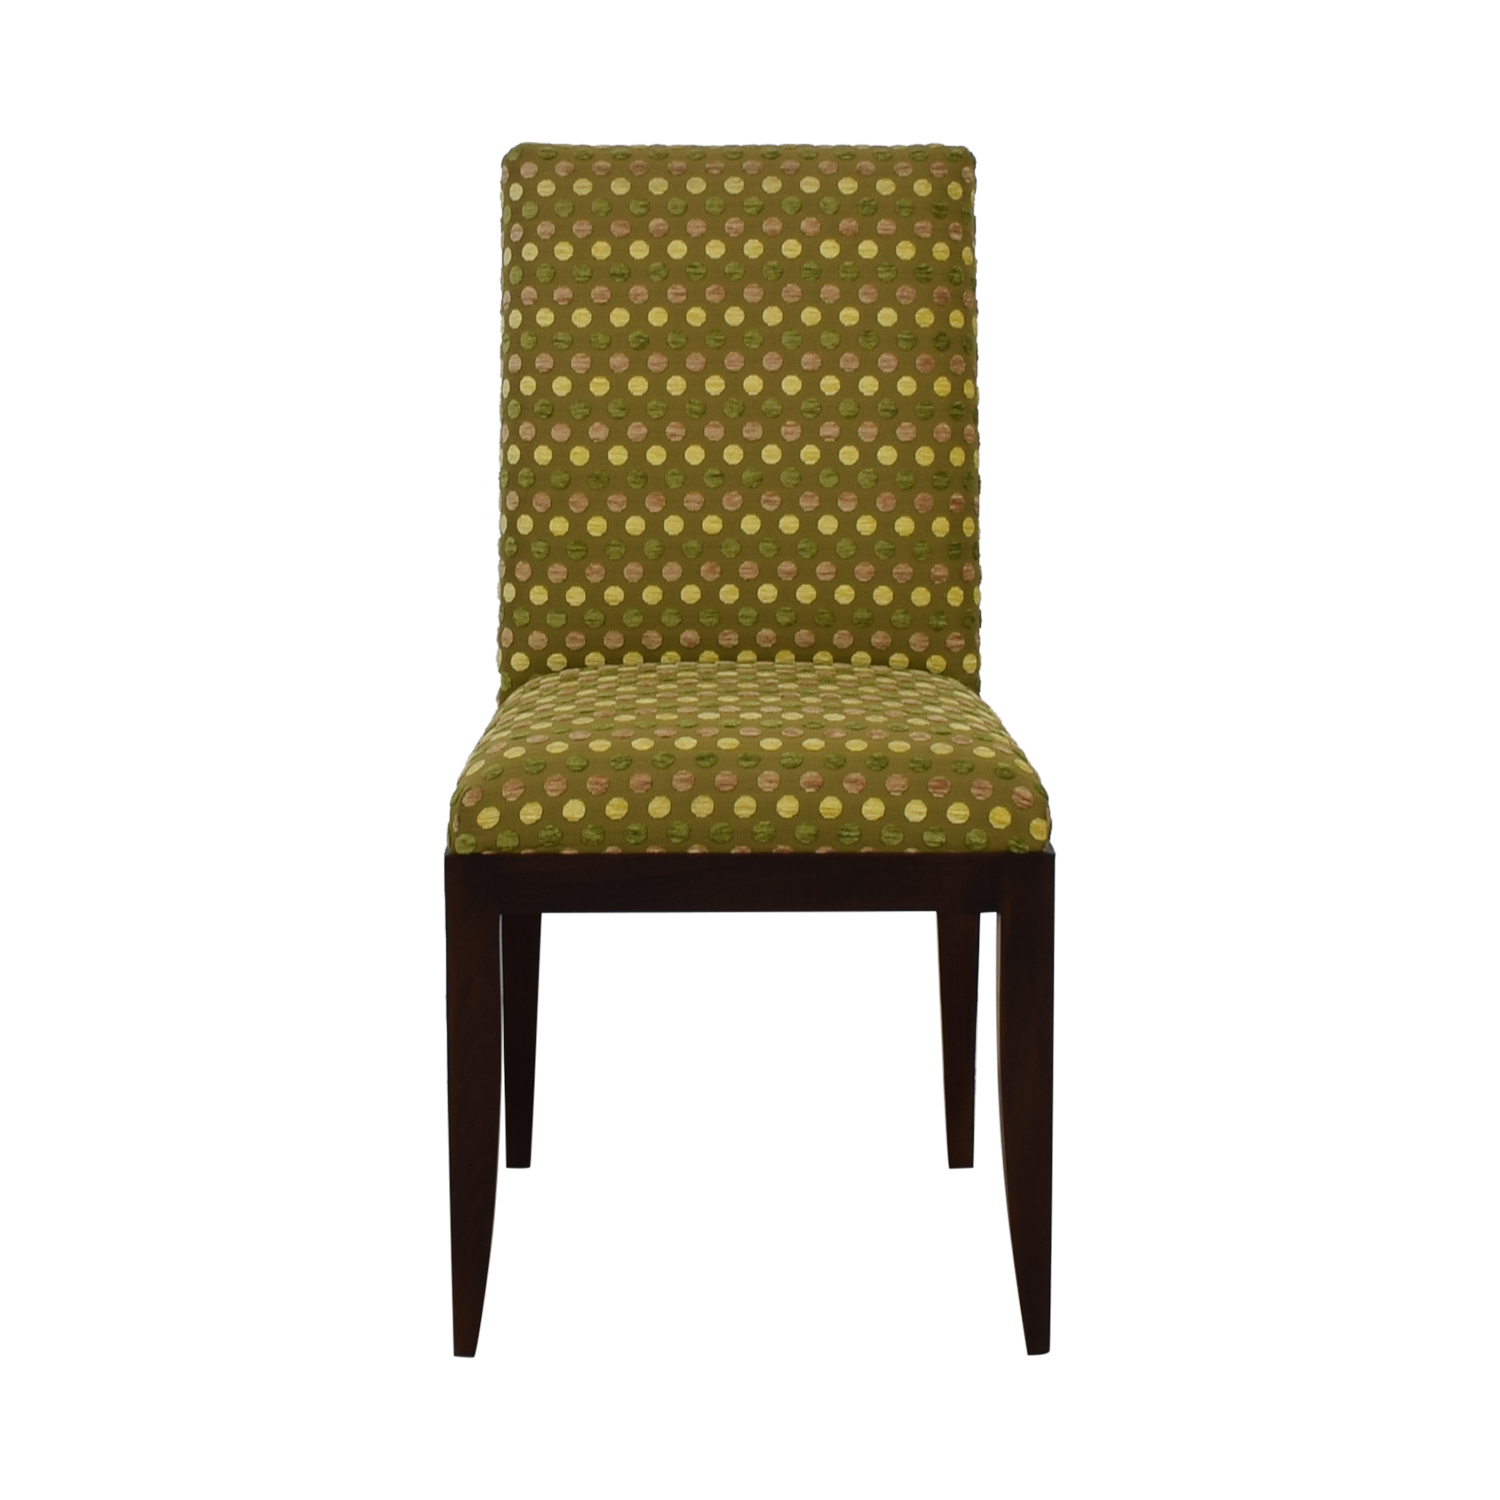 Furniture Masters Polka Dot Chair / Chairs